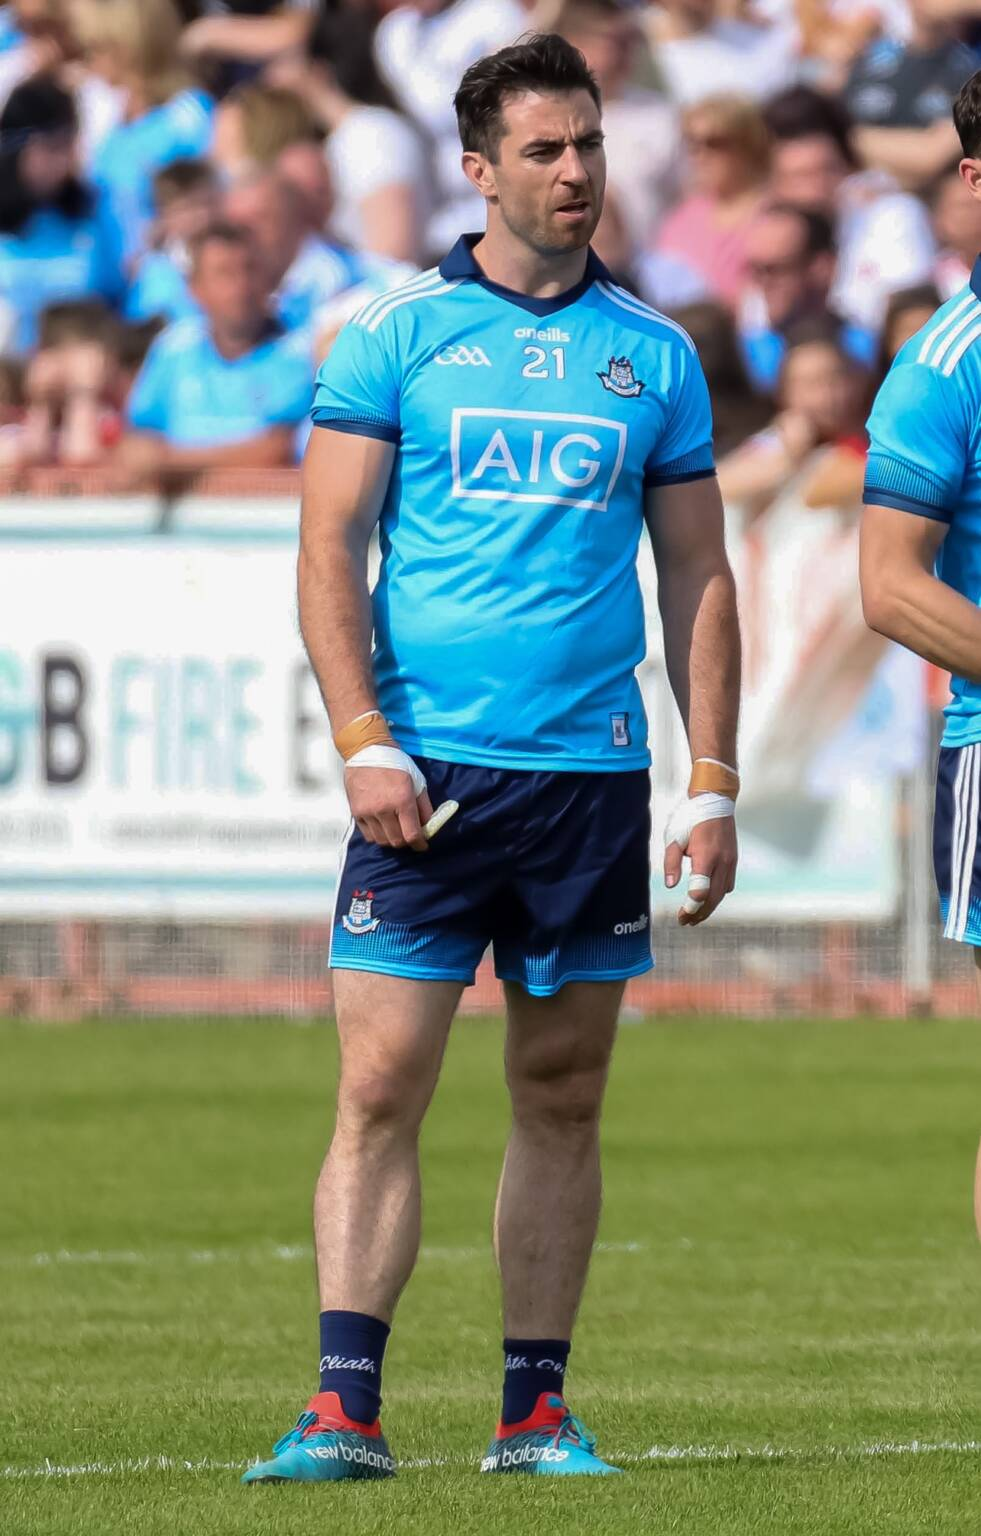 Dublin's Michael Darragh Macauley who announced his retirement from inter-county football ending his glittering 11 years in the Dublin jersey.